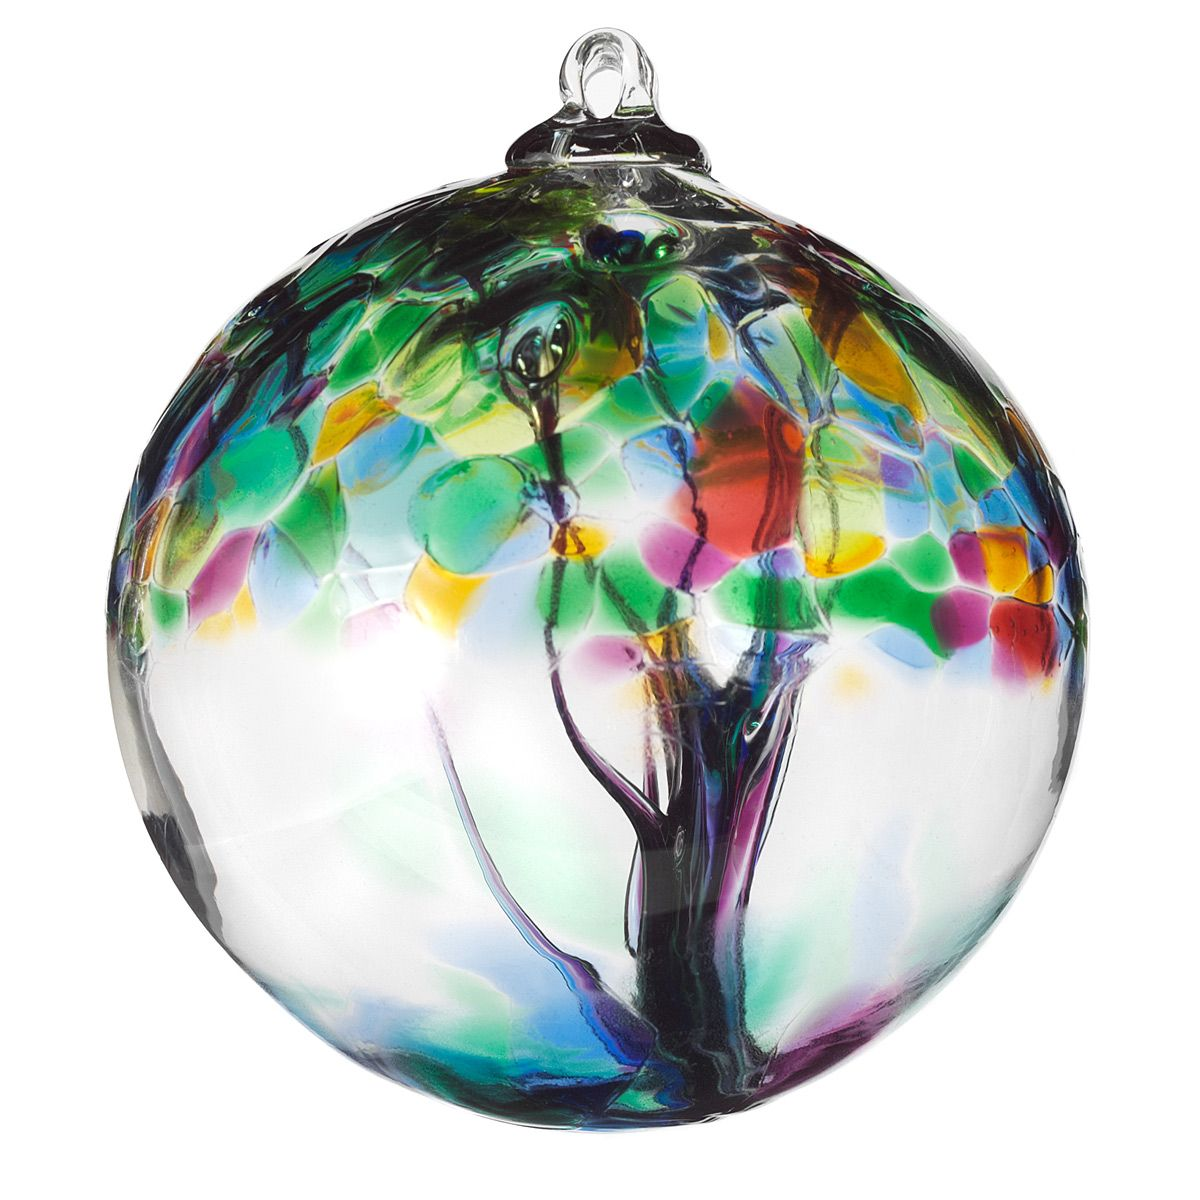 Glass globe ornaments - Recycled Glass Tree Globes Relationships